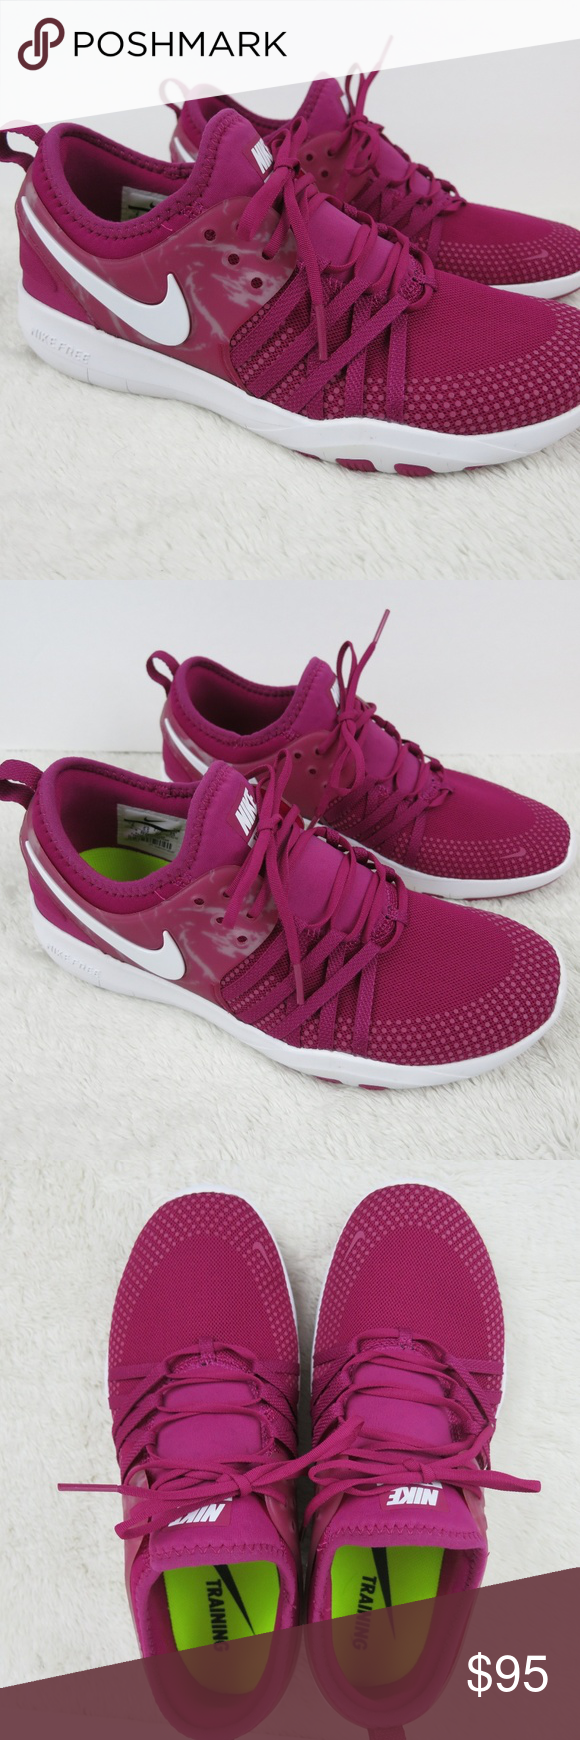 e88319b4f0b9 ... czech nike free tr 7 fuschia shoes nike free tr 7 fuschia pink training  shoes 1b1b4